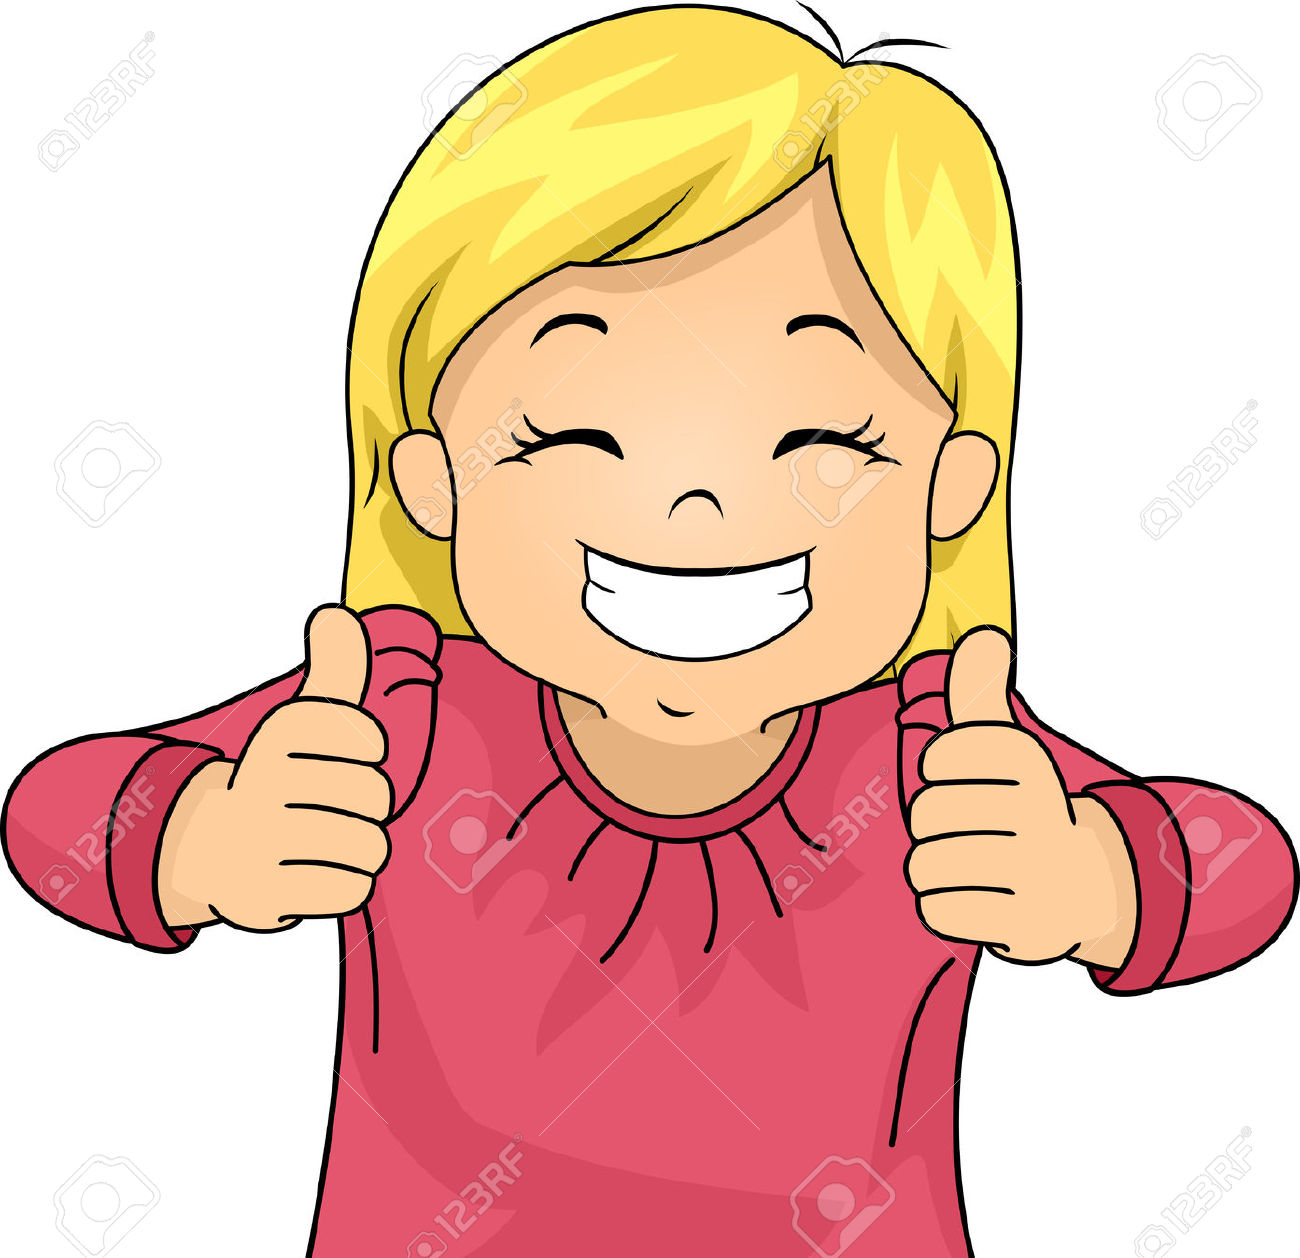 1300x1258 Baby Girl Thumbs Up Clipart